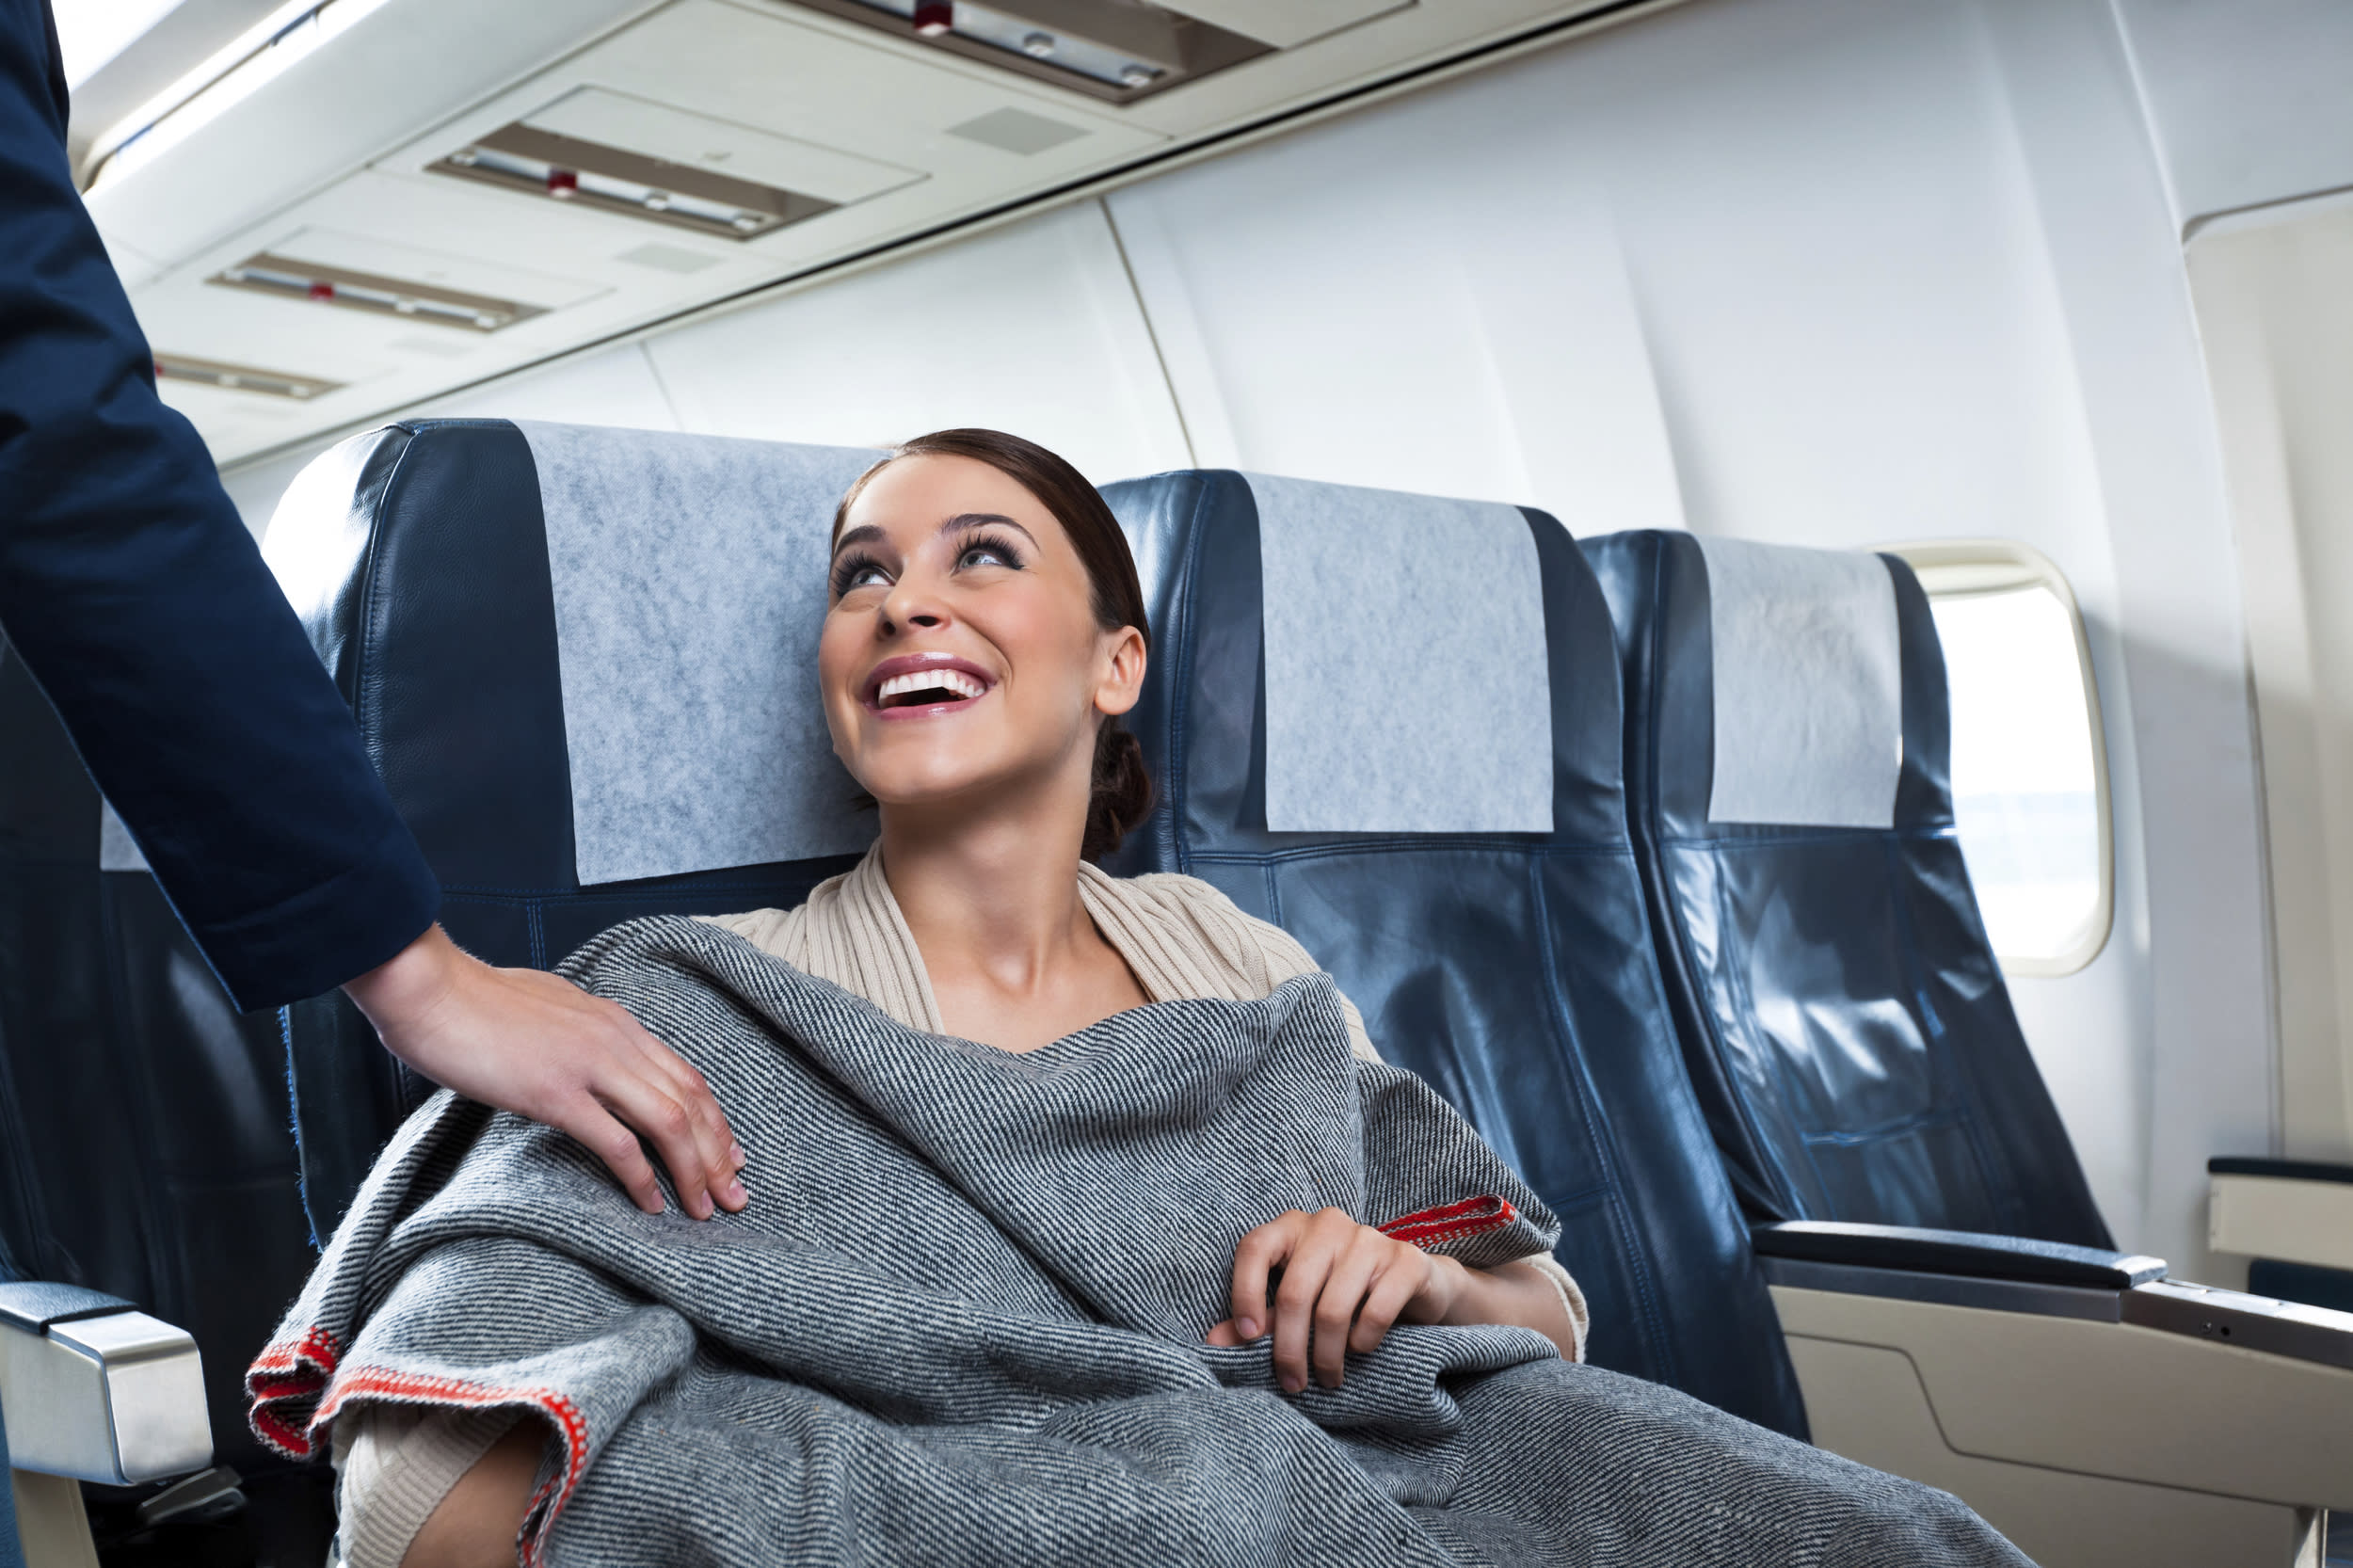 """Get cold on flights? It's worth bringing your own blanket if you want to avoid the charges from some airlines. <a href=""""http://www.norwegian.com/uk/booking/booking-information/optional-charges/"""" target=""""_blank"""">Norwegian</a> provides blankets to passengers for $5, <a href=""""https://www.virginamerica.com/cms/vx-fees"""" target=""""_blank"""">Virgin America</a> charges $10 for pillows and blankets and <a href=""""http://help.jetblue.com/SRVS/CGI-BIN/webcgi.exe?New,Kb=askBlue,case=obj(380351)"""" target=""""_blank"""">JetBlue</a> offers unused pillows for $6 and unused blankets for $5."""